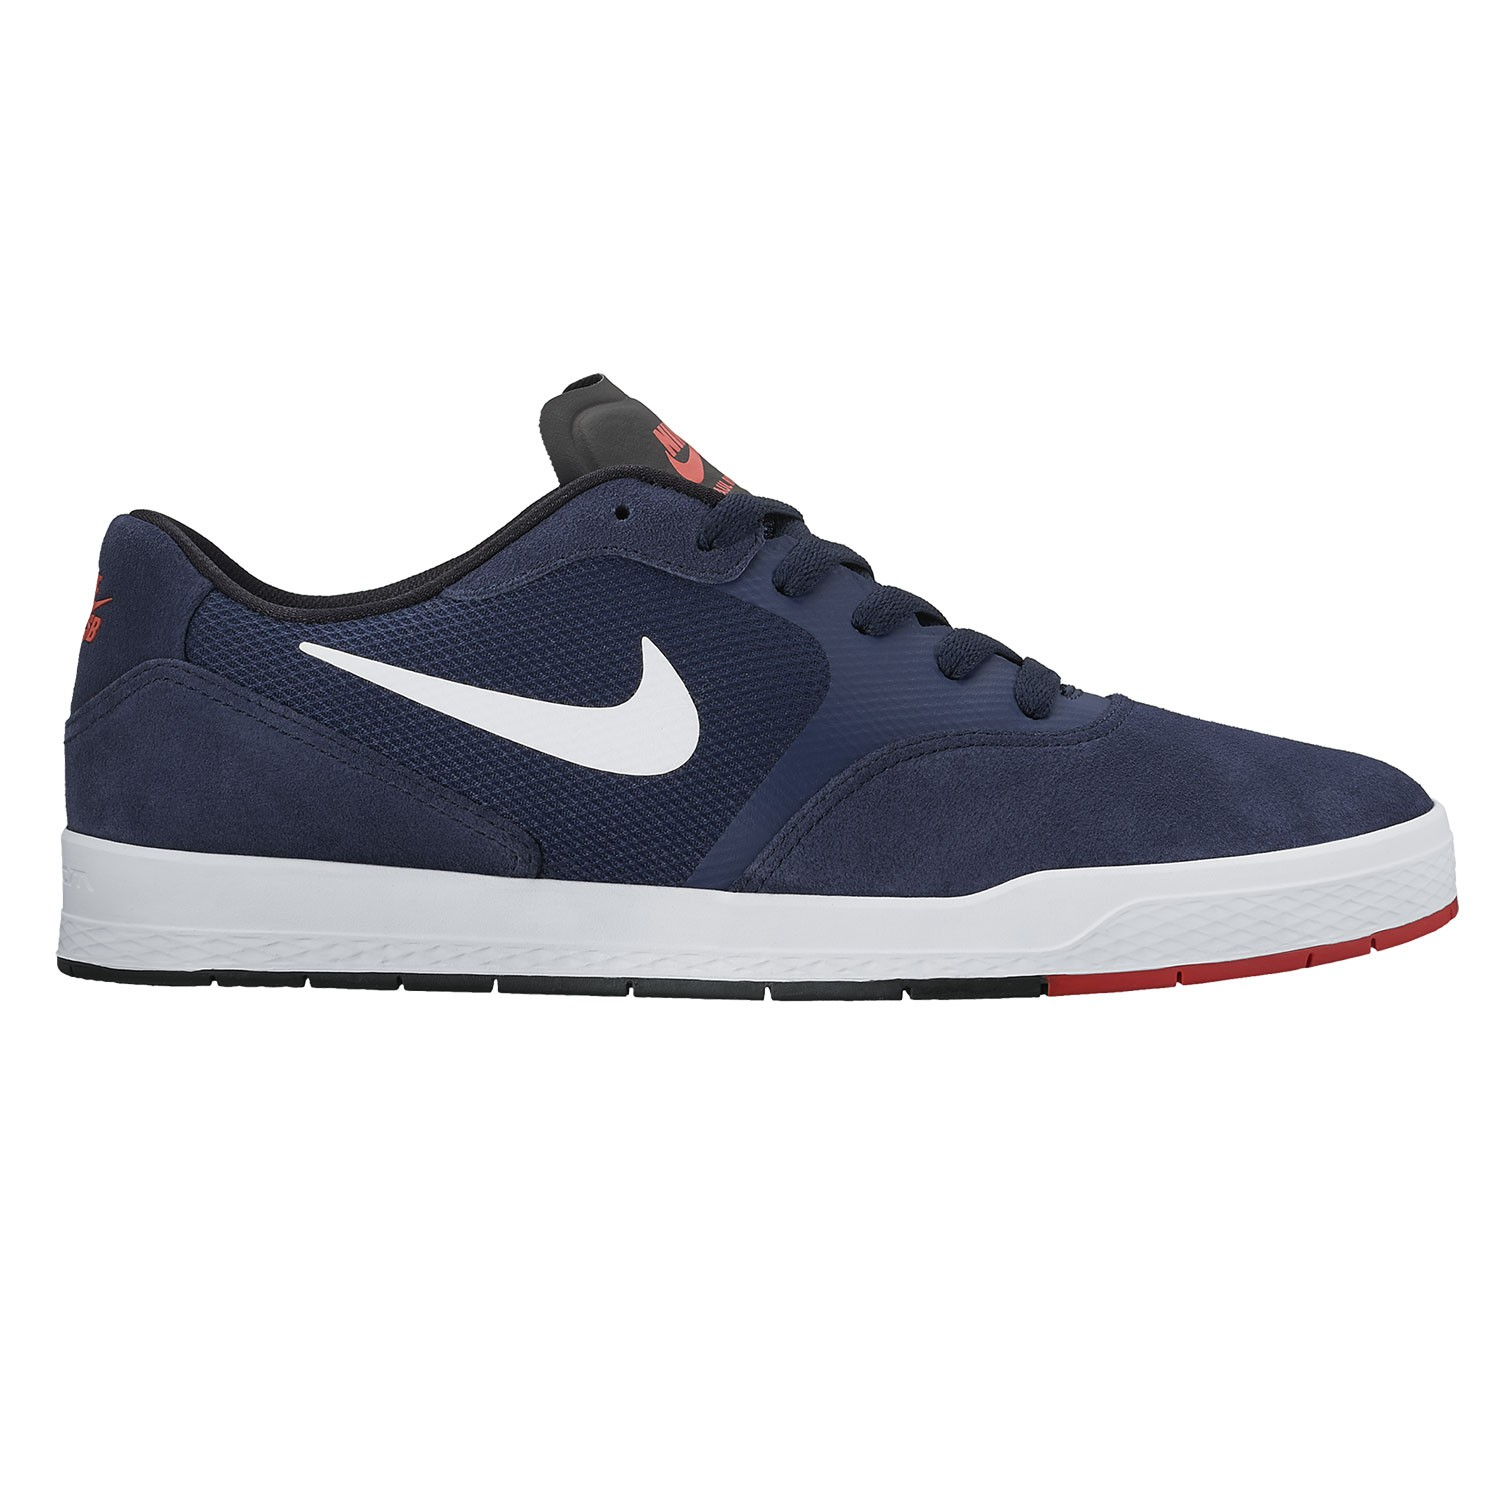 48761a7785 Nike Sb P Rod 3 For Men - Musée des impressionnismes Giverny